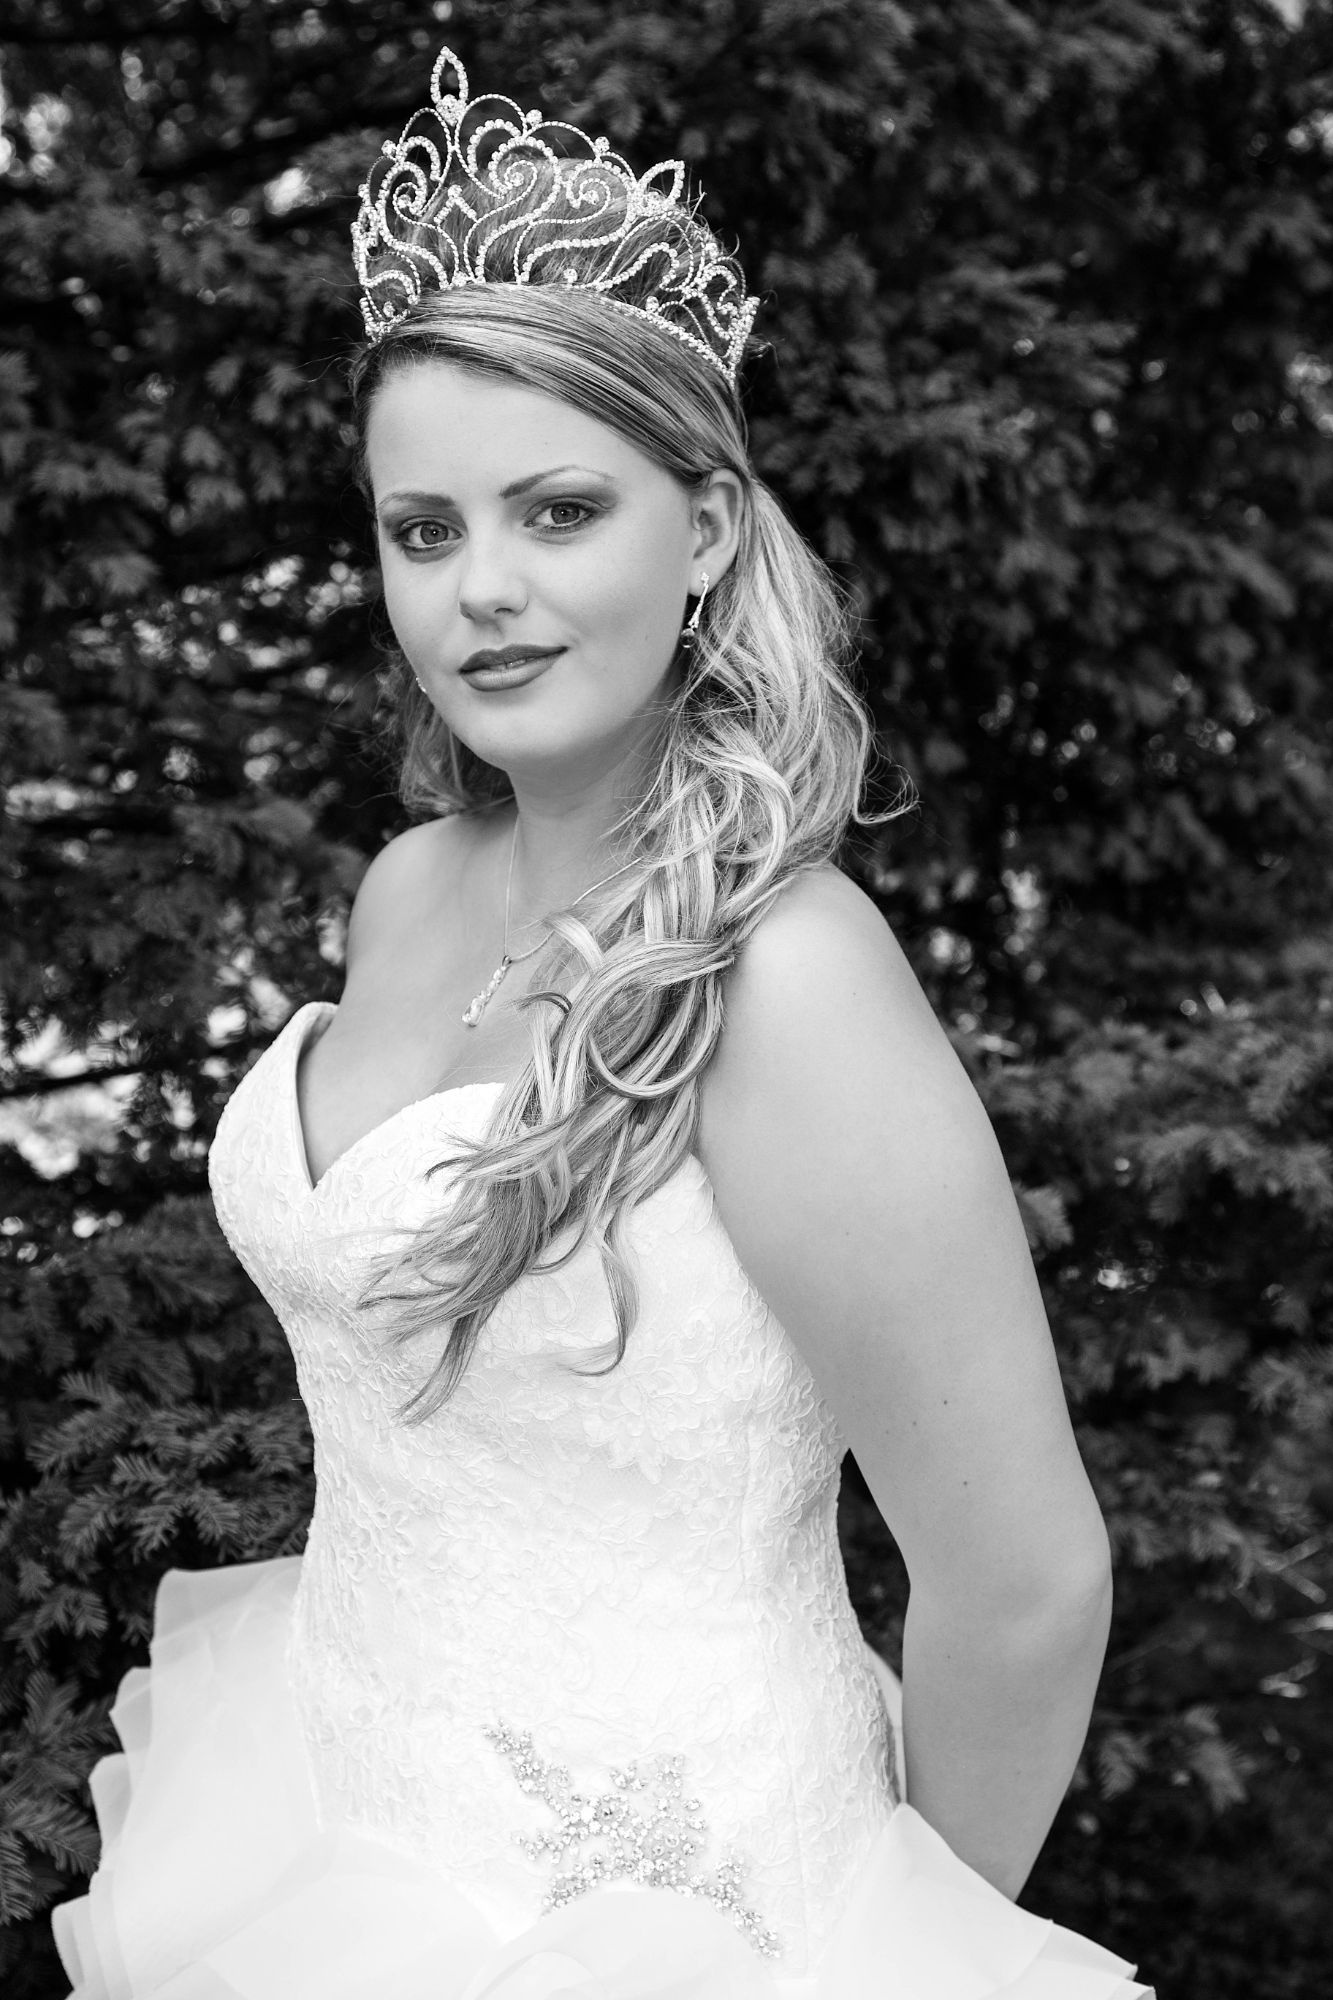 Ross Priory Shoot 260814 (175)